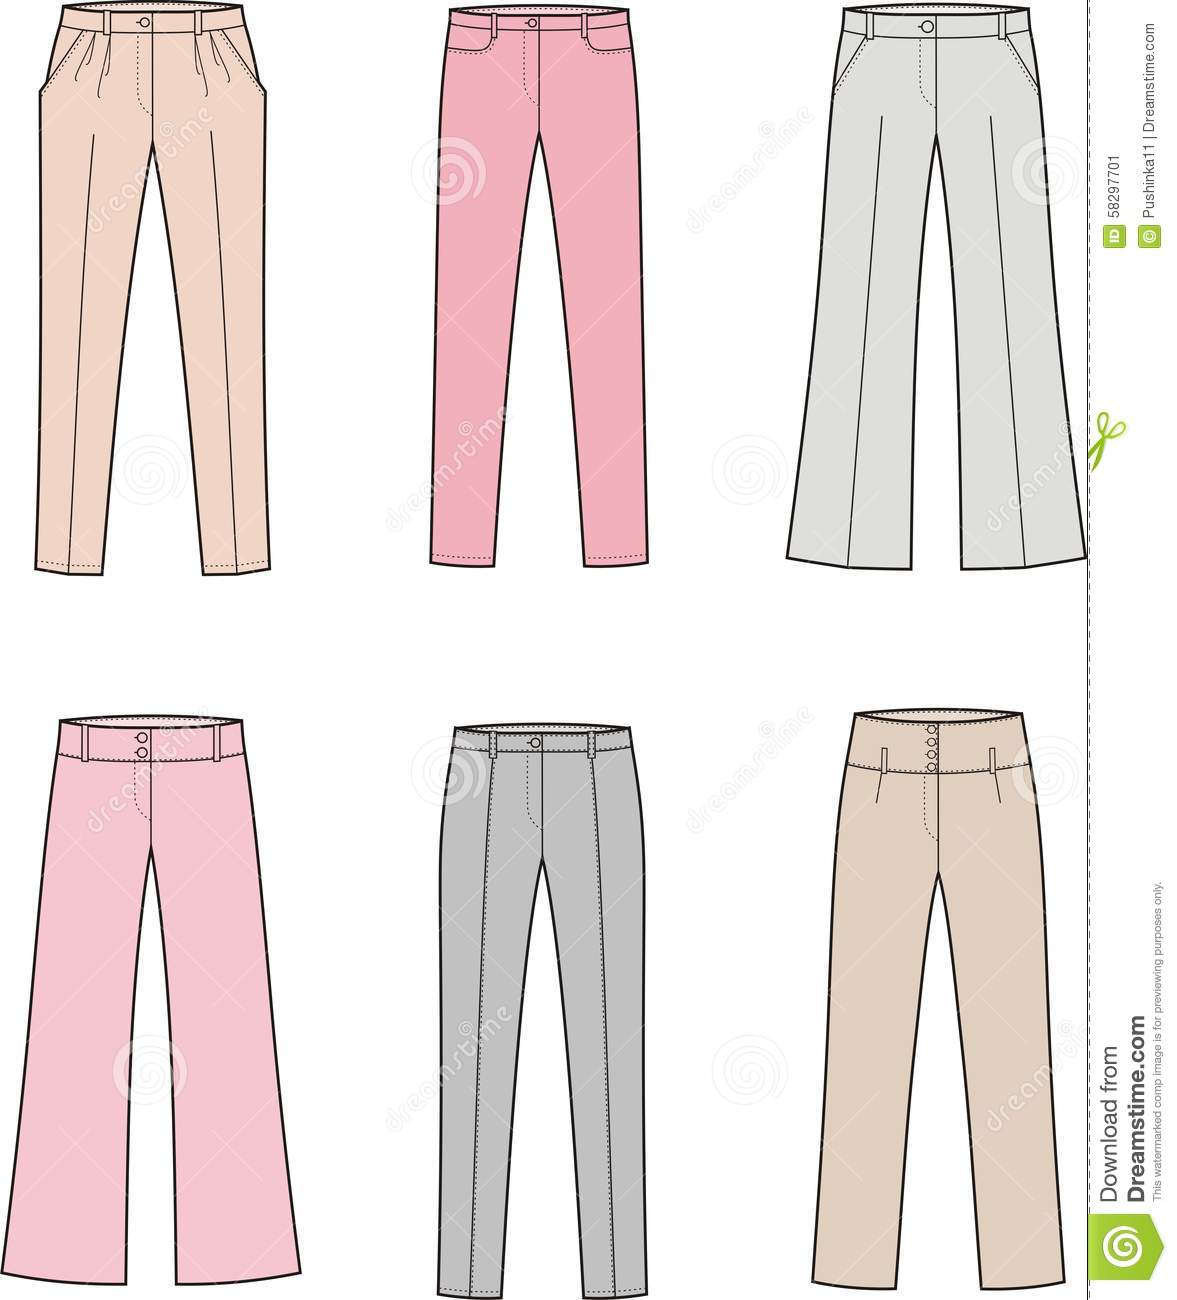 Popular Women39s Blouse And Pants Vector Illustration